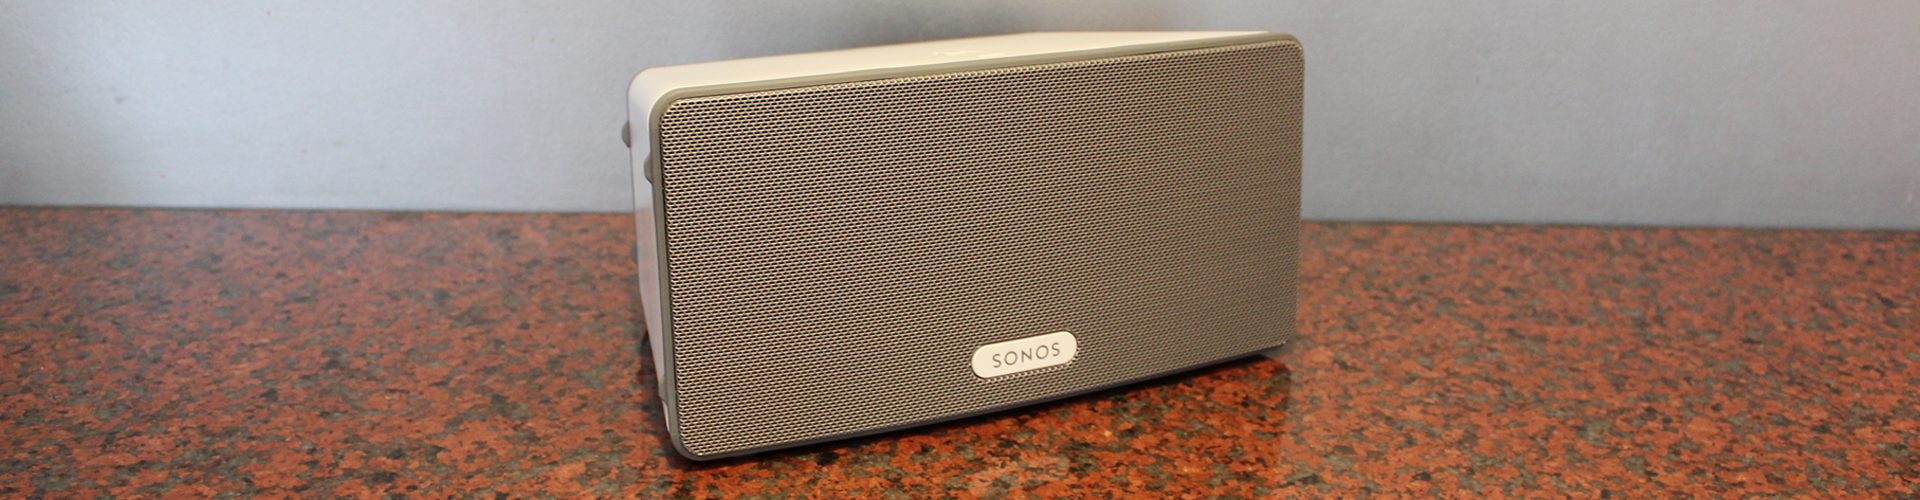 Sonos Play 3 Speaker Review: The Affordable Way To Premium Sound